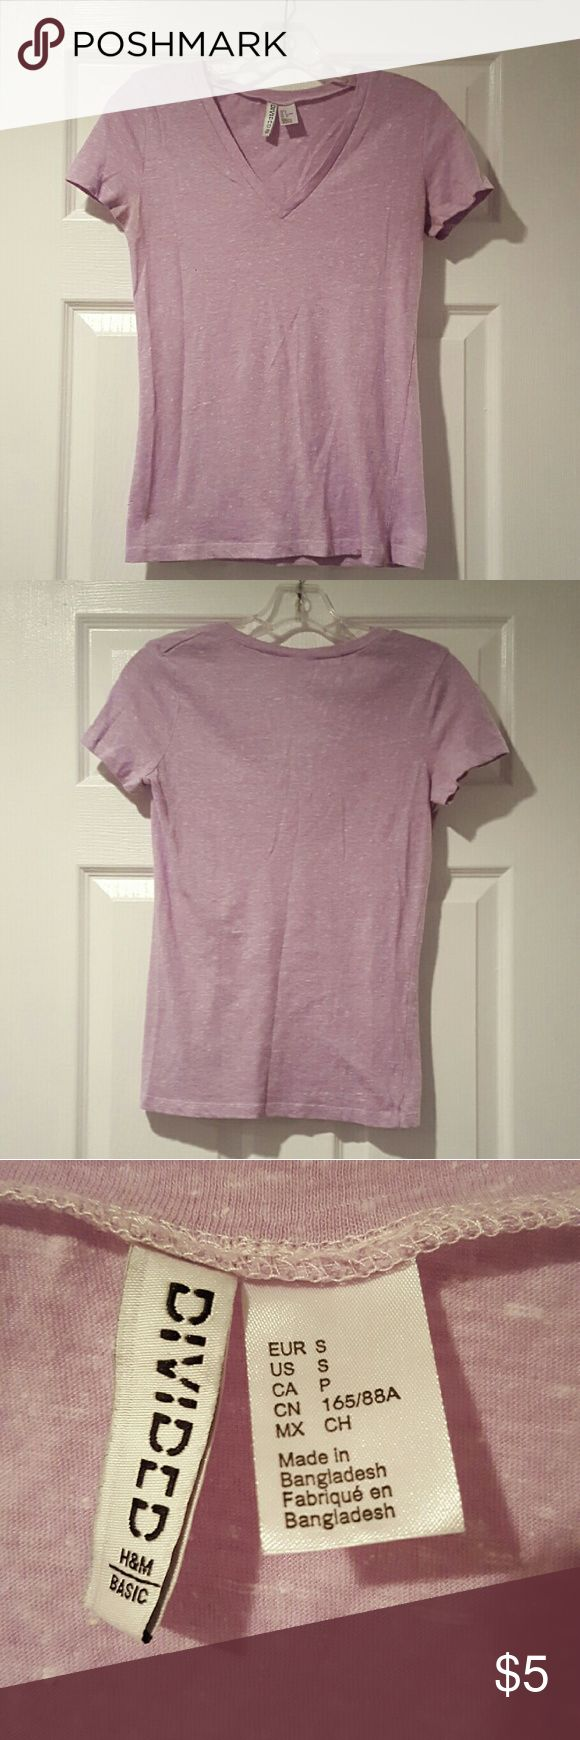 H&M Tshirt Lavender v-neck H&M tshirt. Worn 2 or 3 times. Practically brand new. Has a faded worn look to it. Super comfortable H&M Tops Tees - Short Sleeve